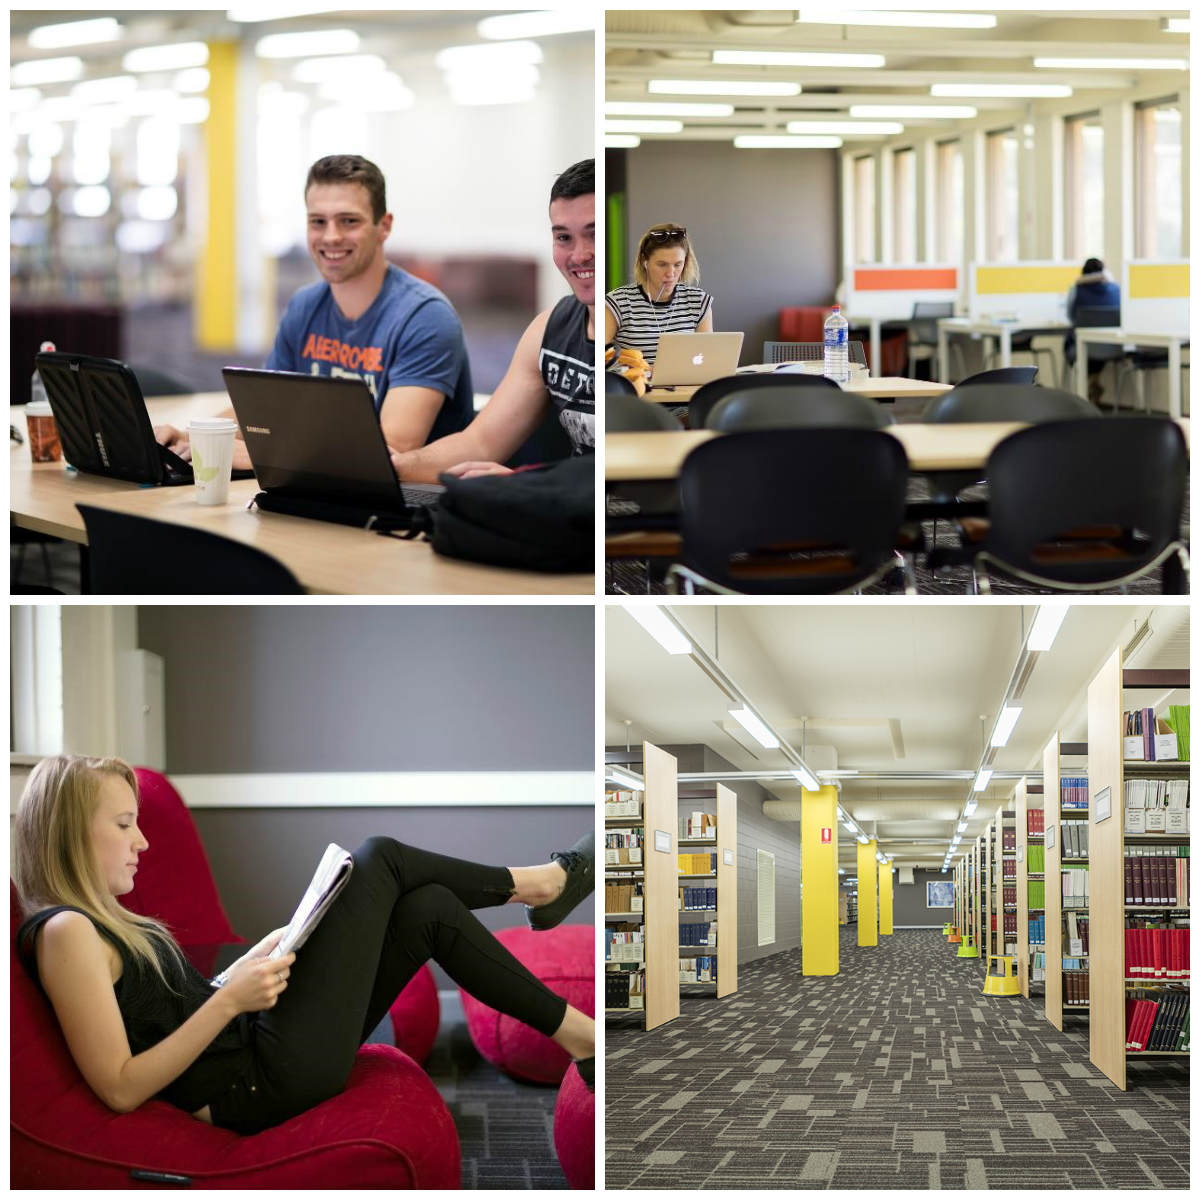 Our new facilities in the Wagga Library and Commons